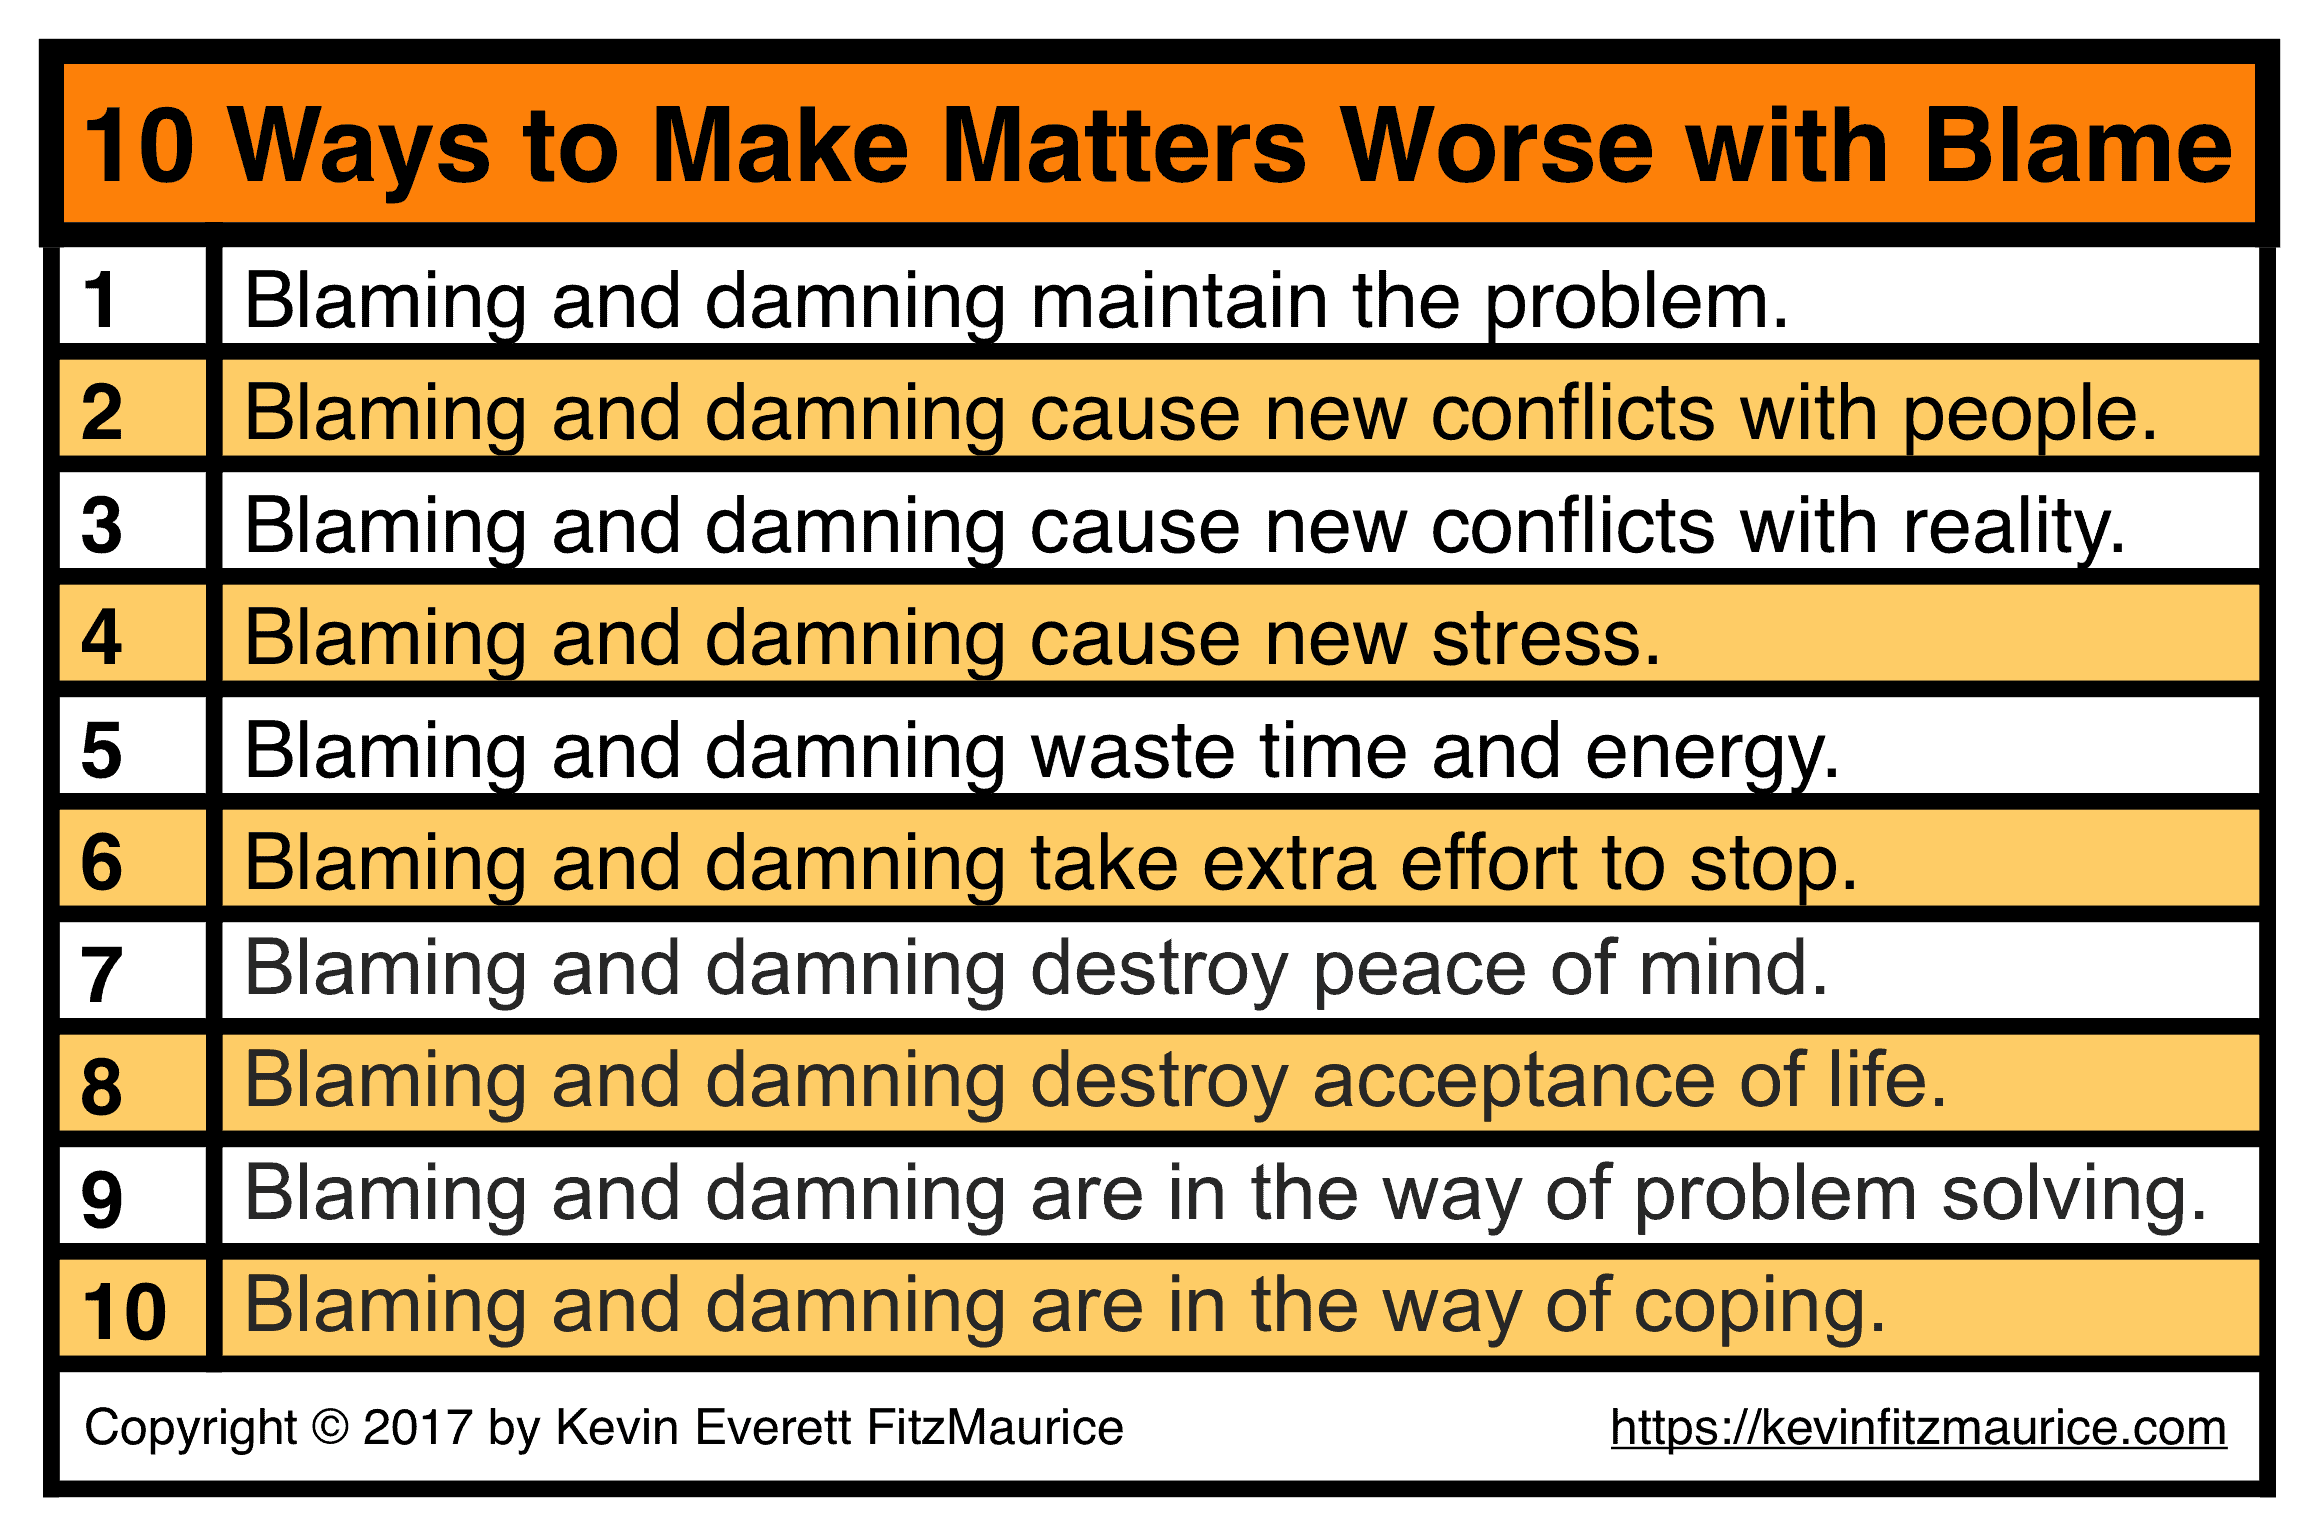 10 Ways to Make Things Worse